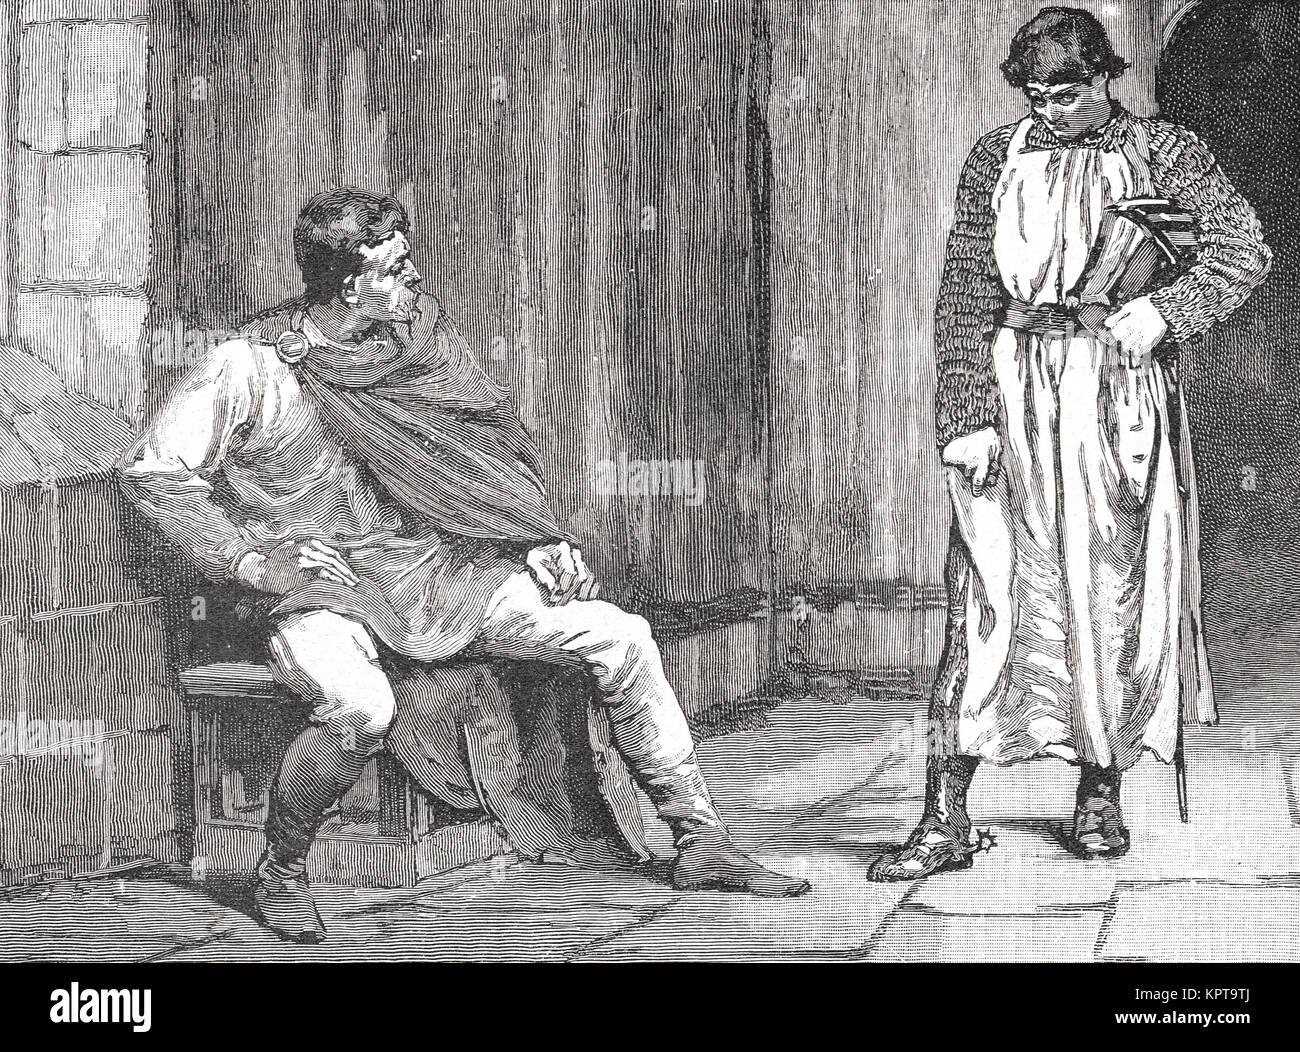 The confession of Waltheof, 1st Earl of Northumbria, 1075, following the Revolt of the Earls - Stock Image